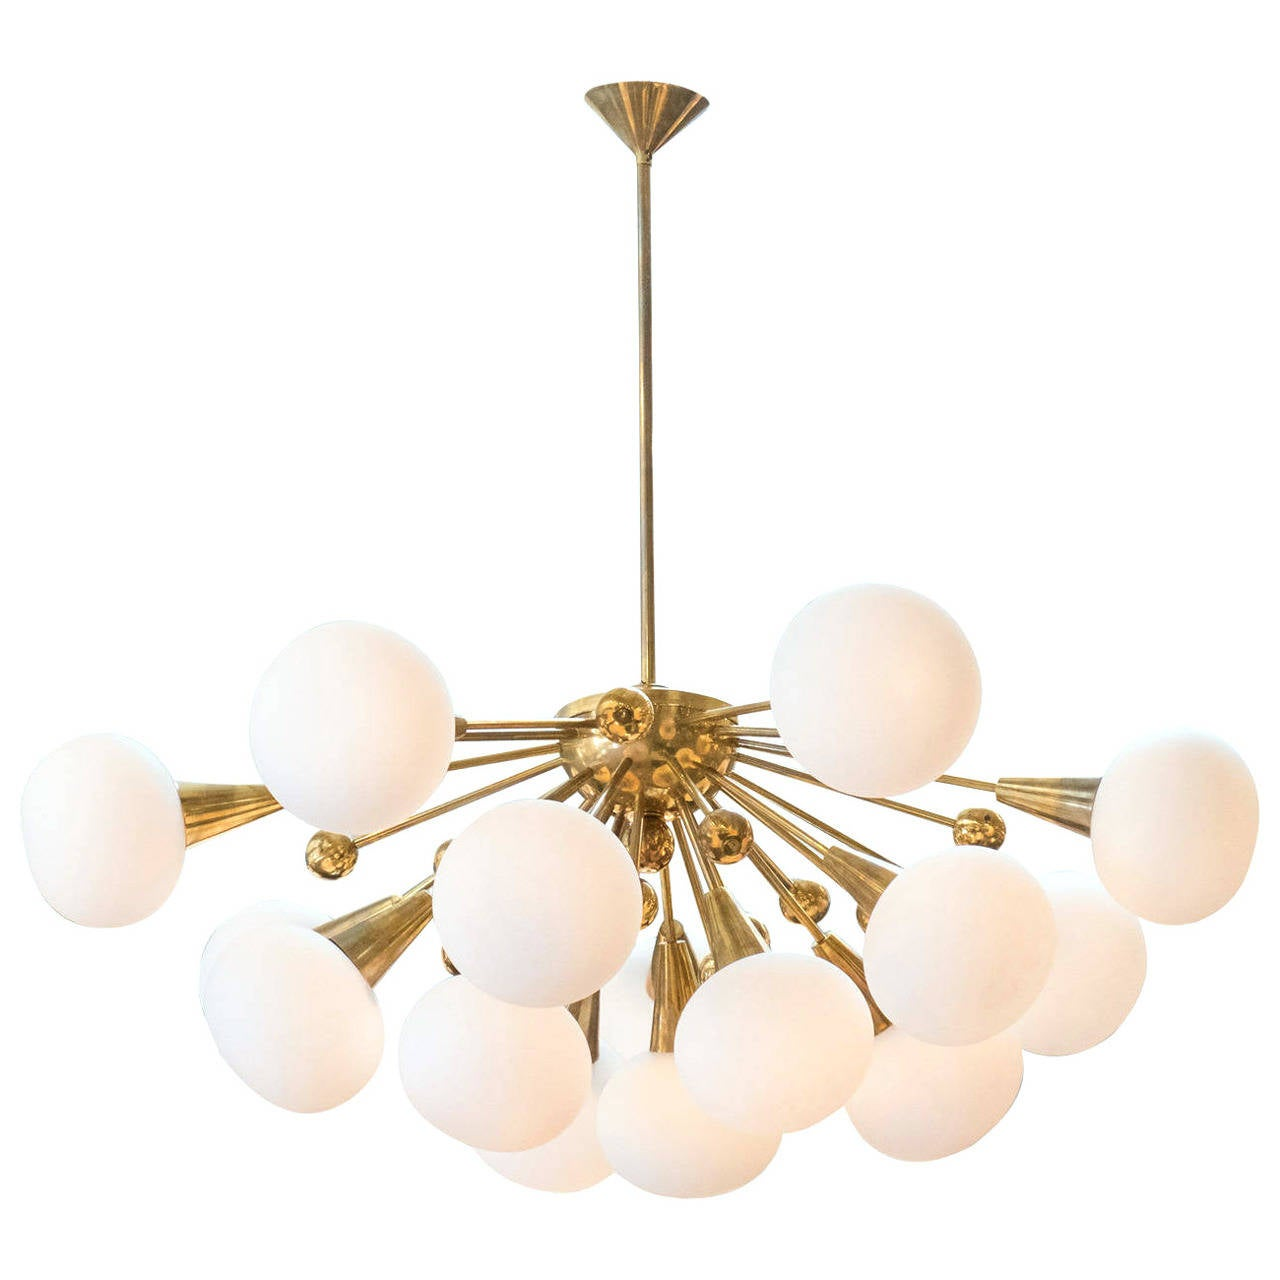 Brass Sputnik Chandelier: Murano Glass Globe and Brass Sputnik Chandelier 1,Lighting